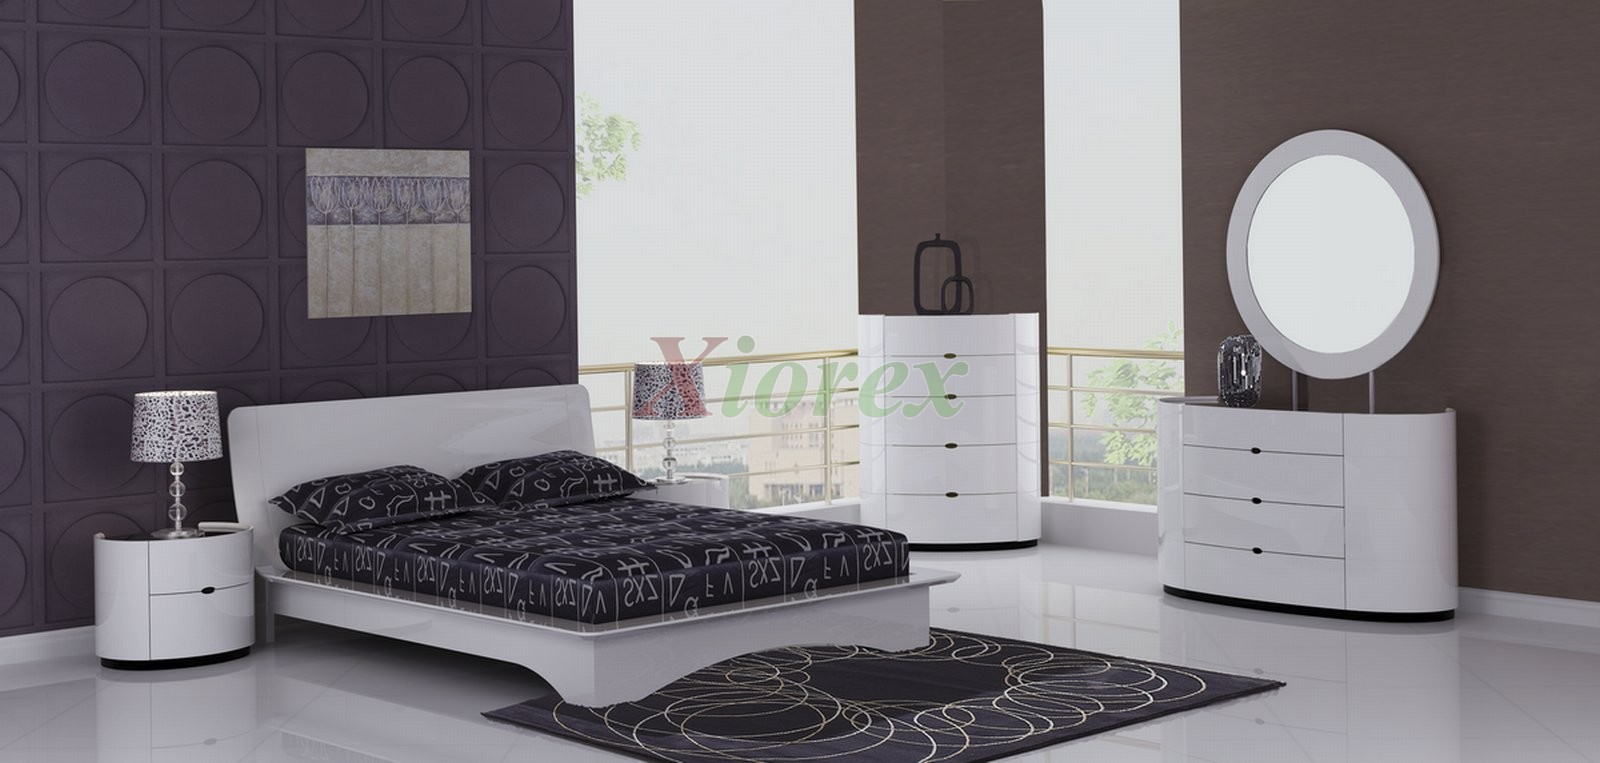 Eri All White Bedroom Collections Are Modern Bed Sets With Platform Beds Stylish Concave Headboards And Beautifully Designed Deep Rounded Corners On The